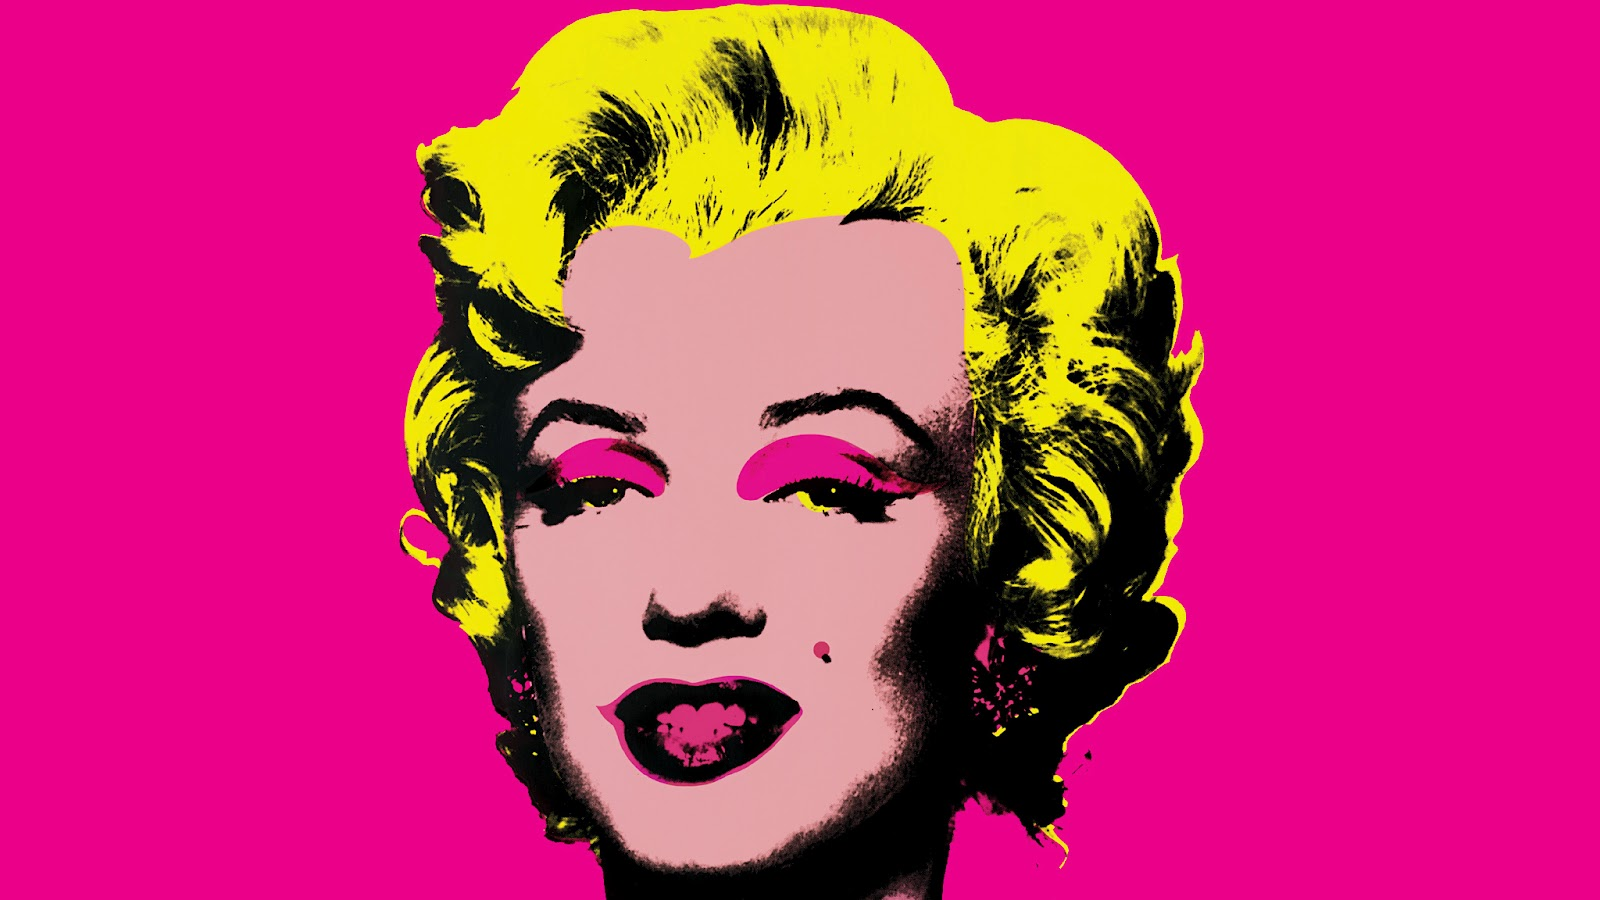 archimeda born of dreams inspired by freedom marilyn monroe pop art. Black Bedroom Furniture Sets. Home Design Ideas